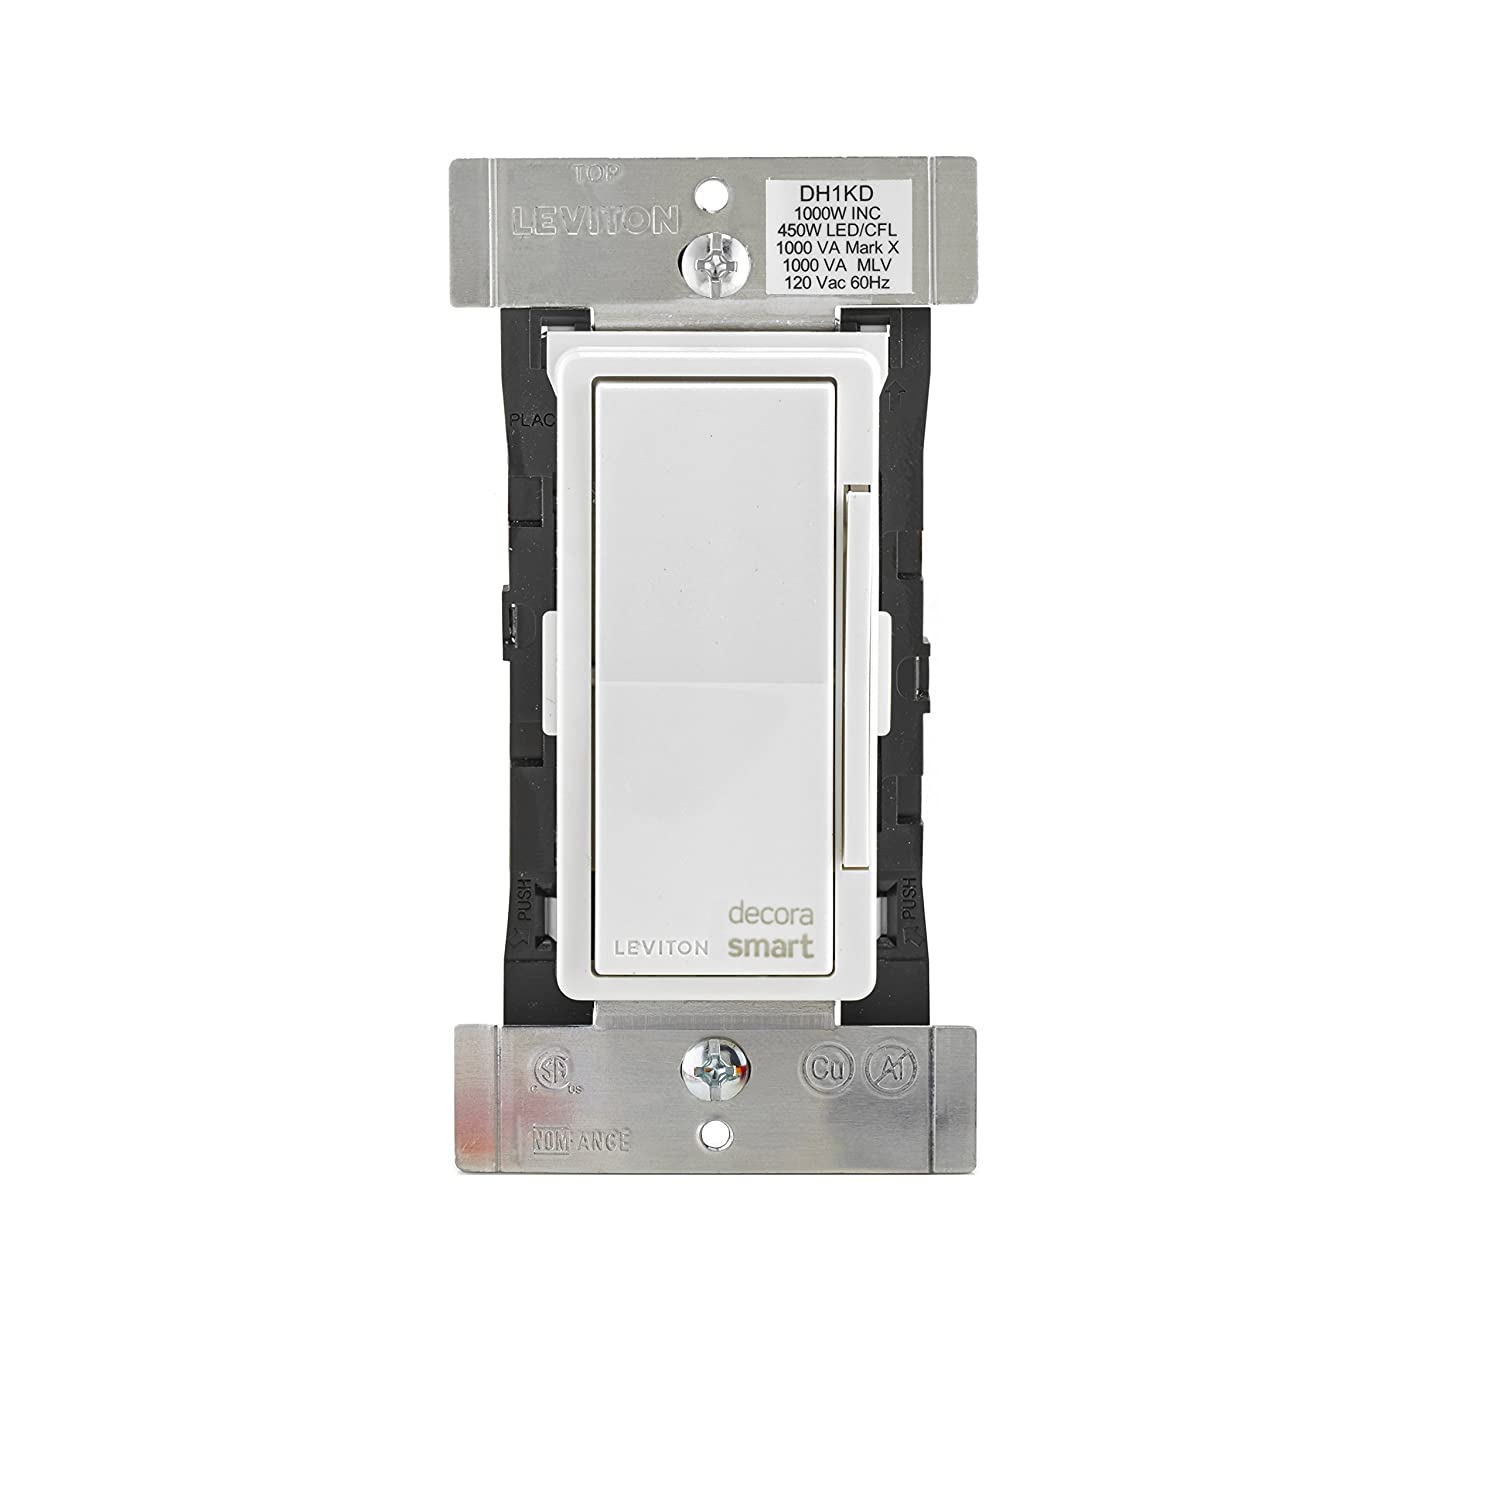 Leviton DH1KD-1BZ 1000W Decora Smart Dimmer, Works with Apple ...